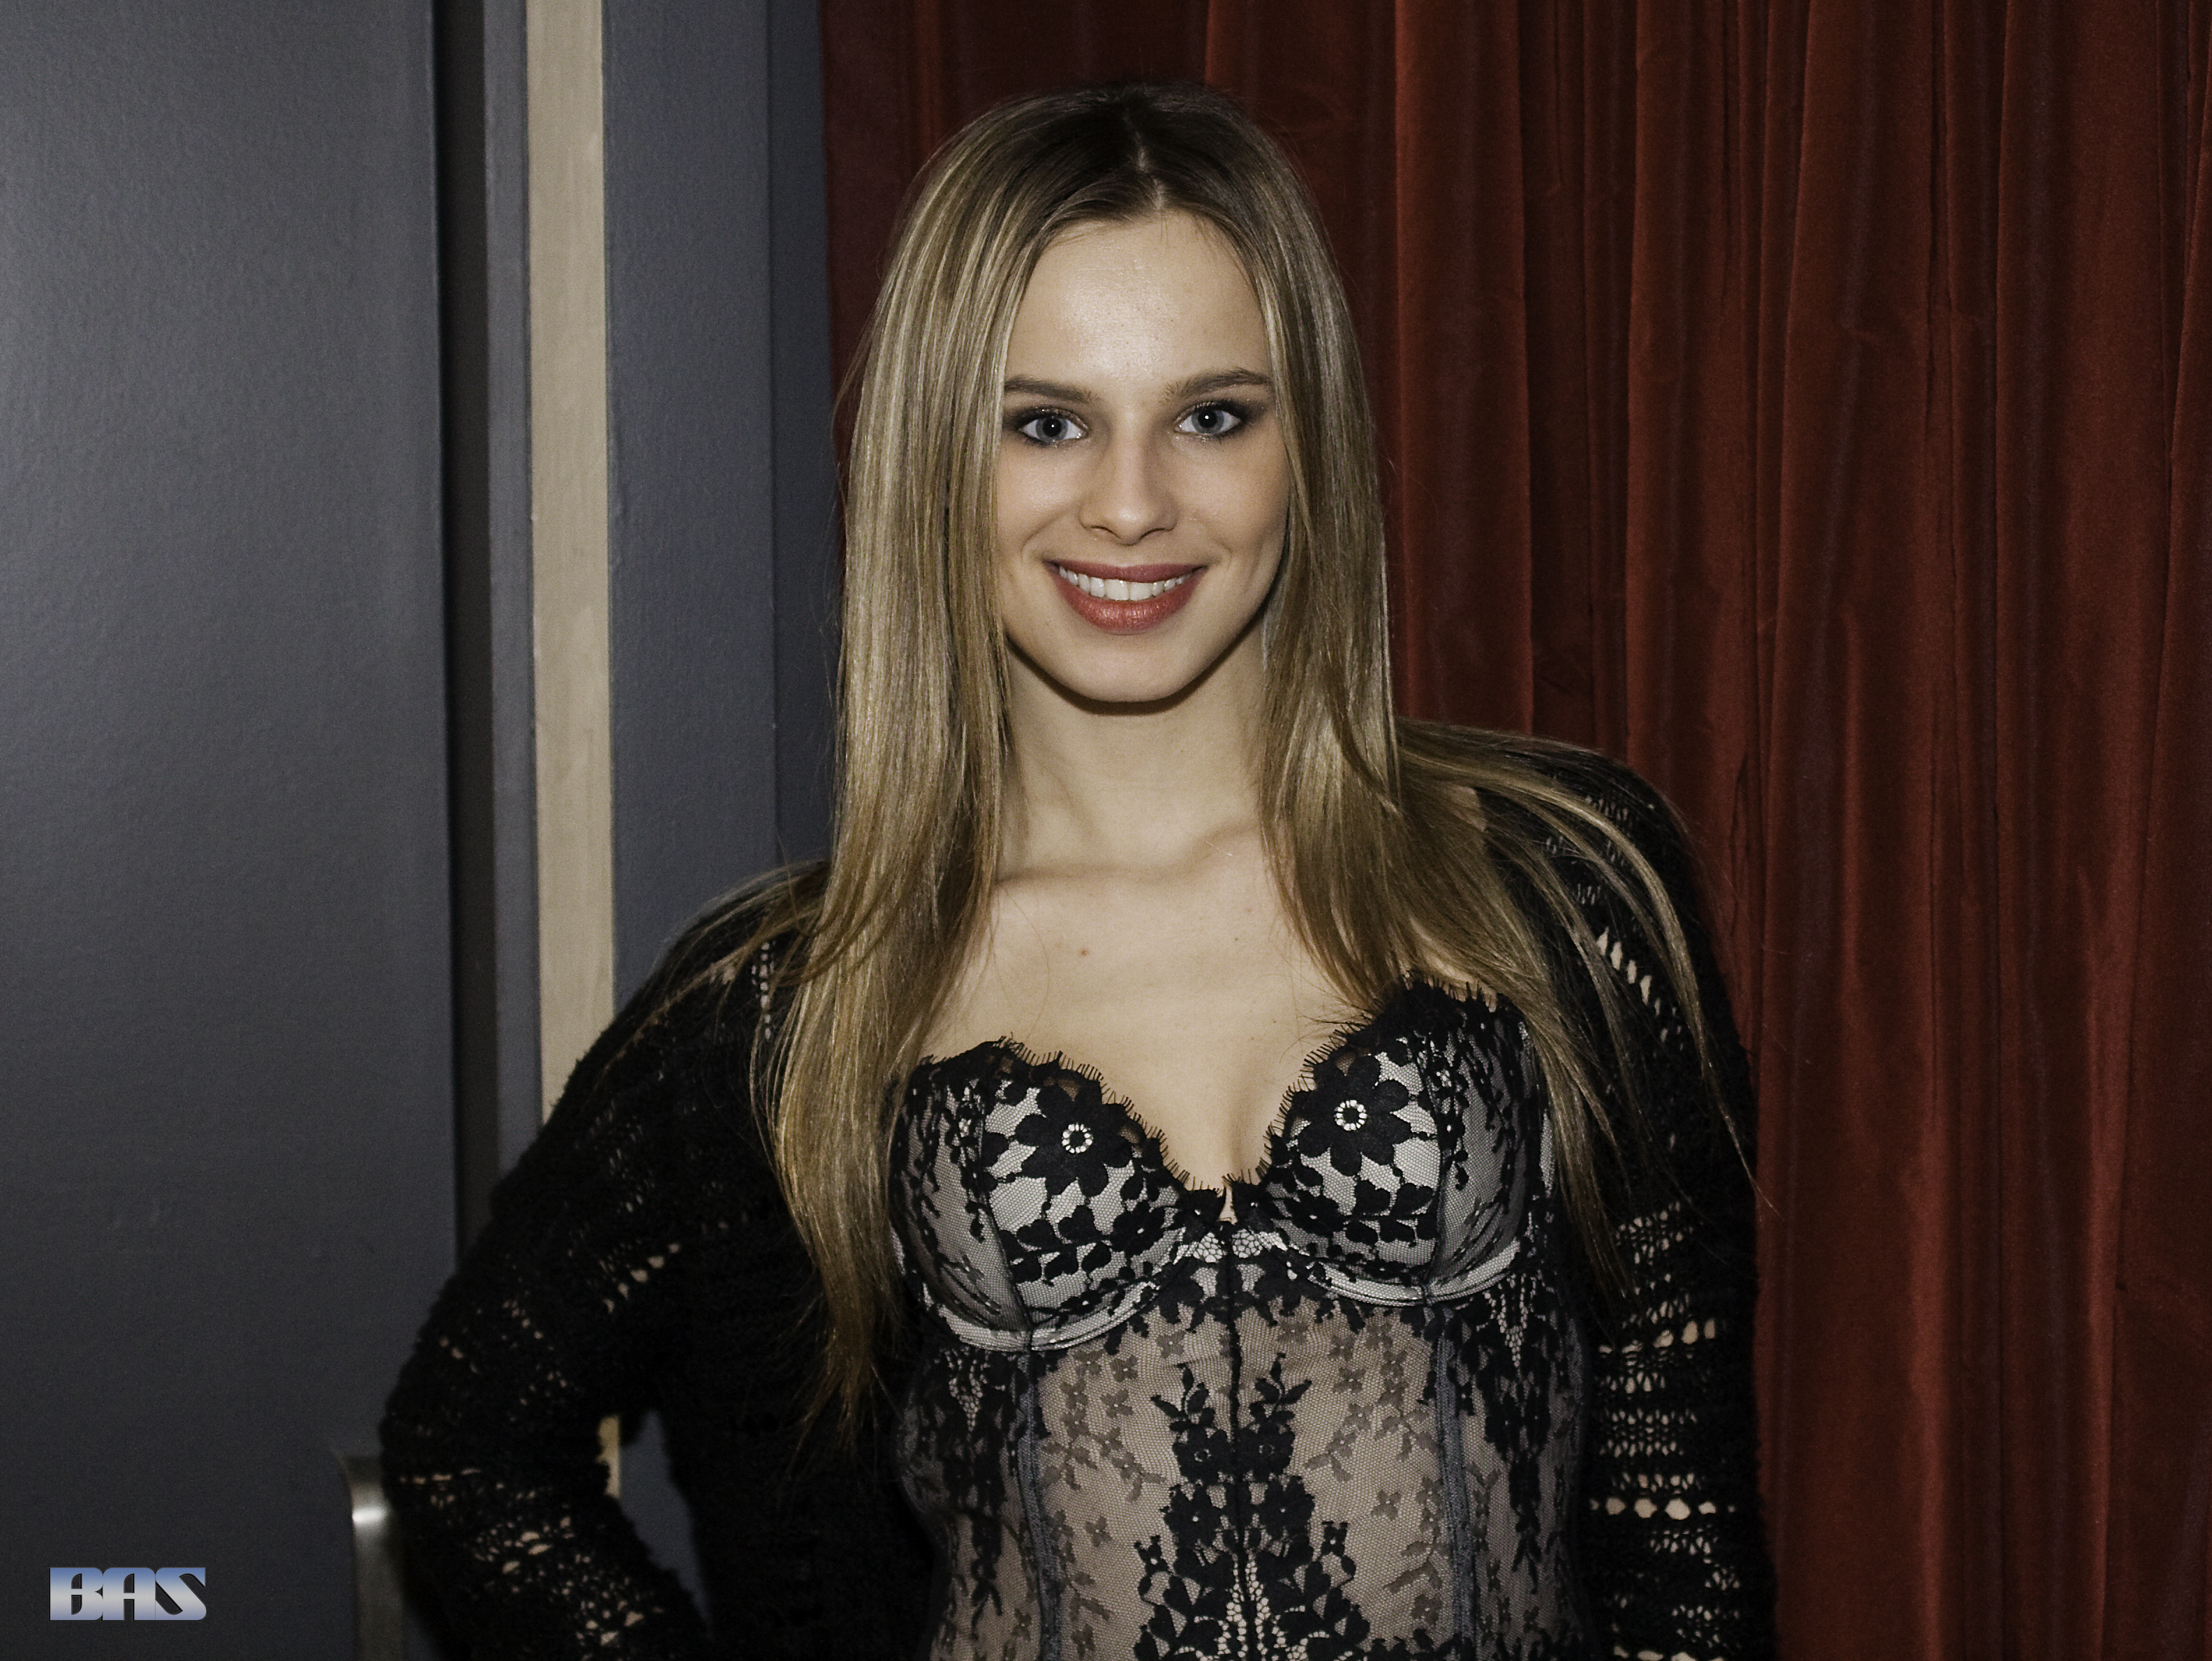 Jillian Janson nude photos 2019